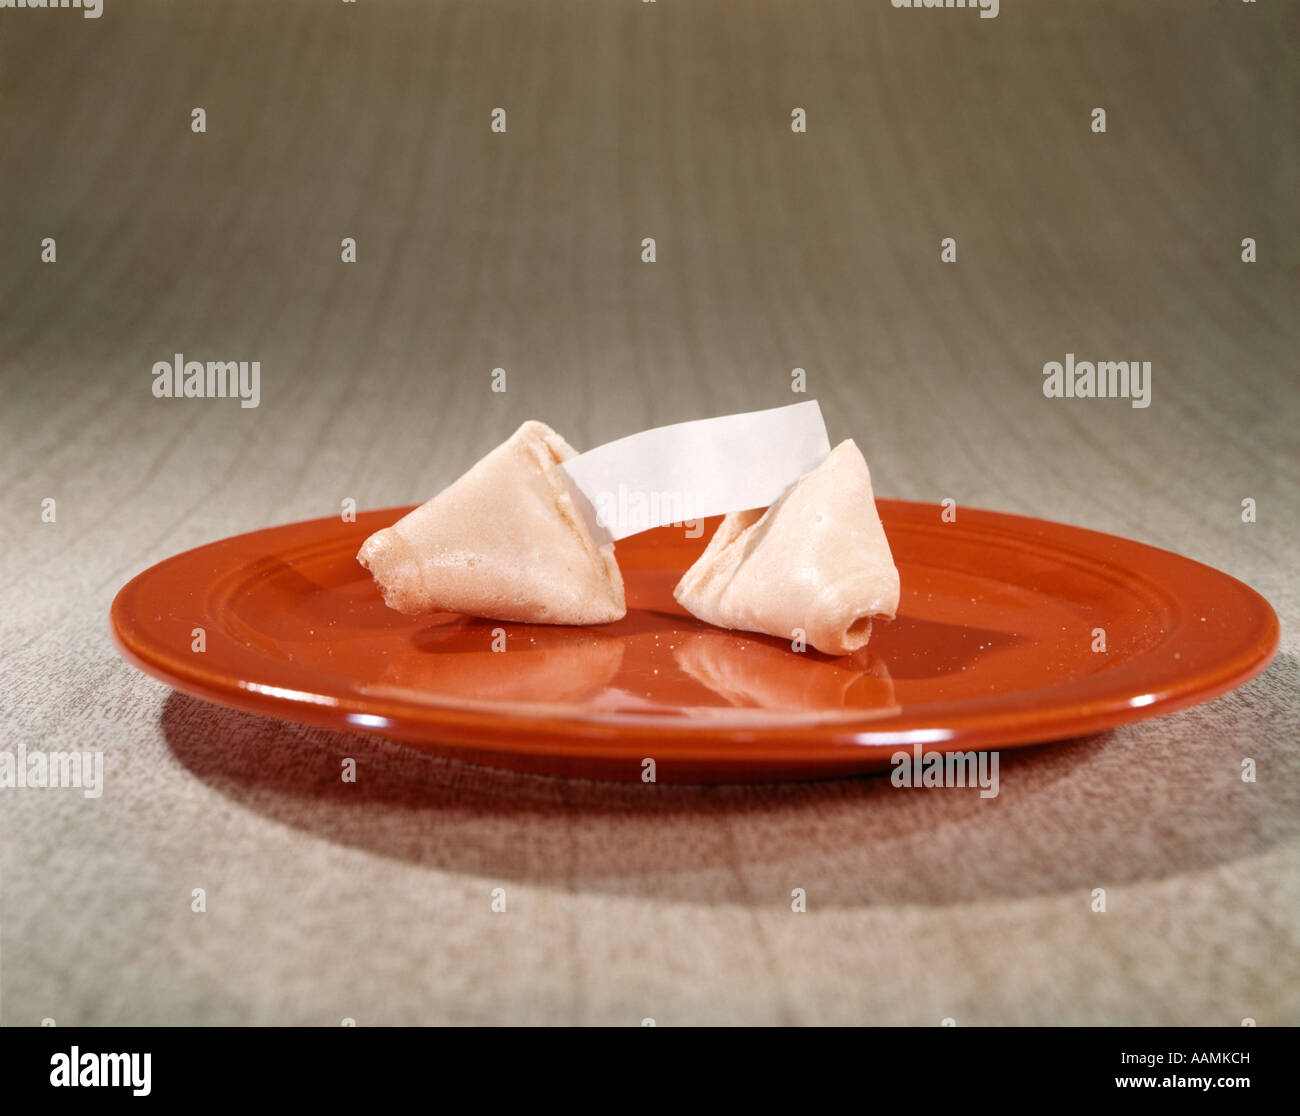 CHINESE FORTUNE COOKIE ON RED PLATE - Stock Image